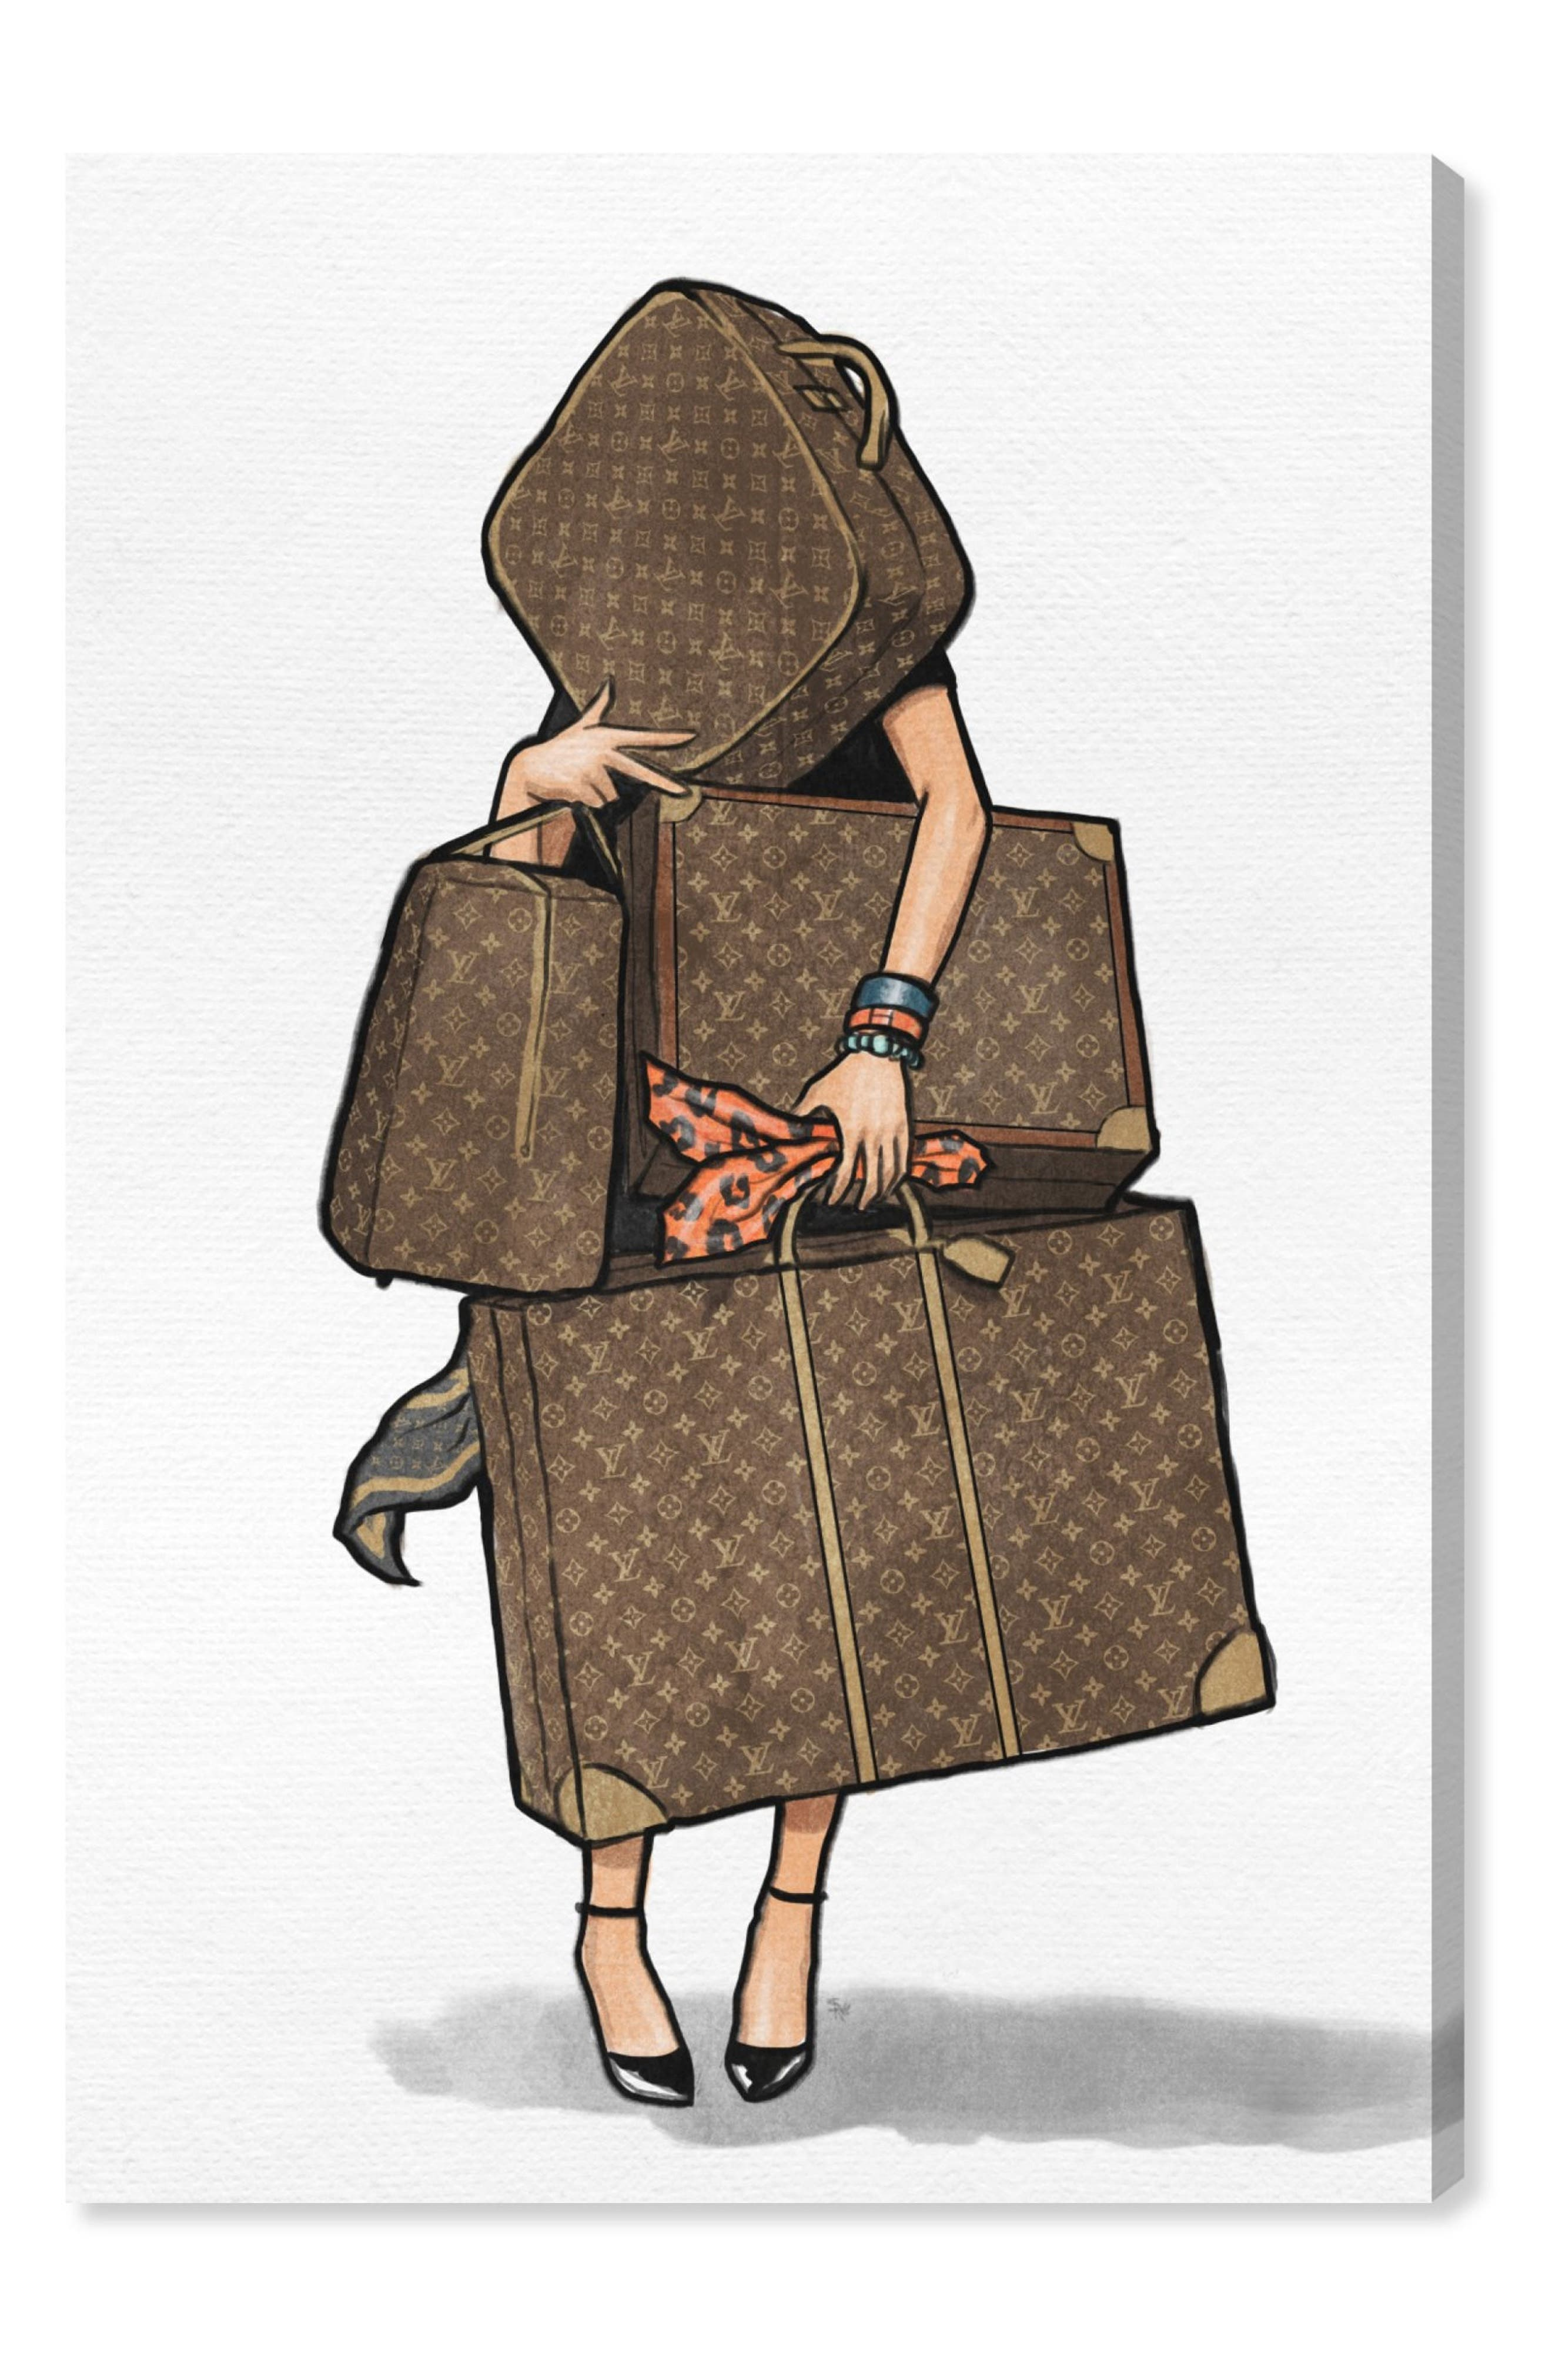 Oliver Gal Bags Bags Bags Canvas Wall Art